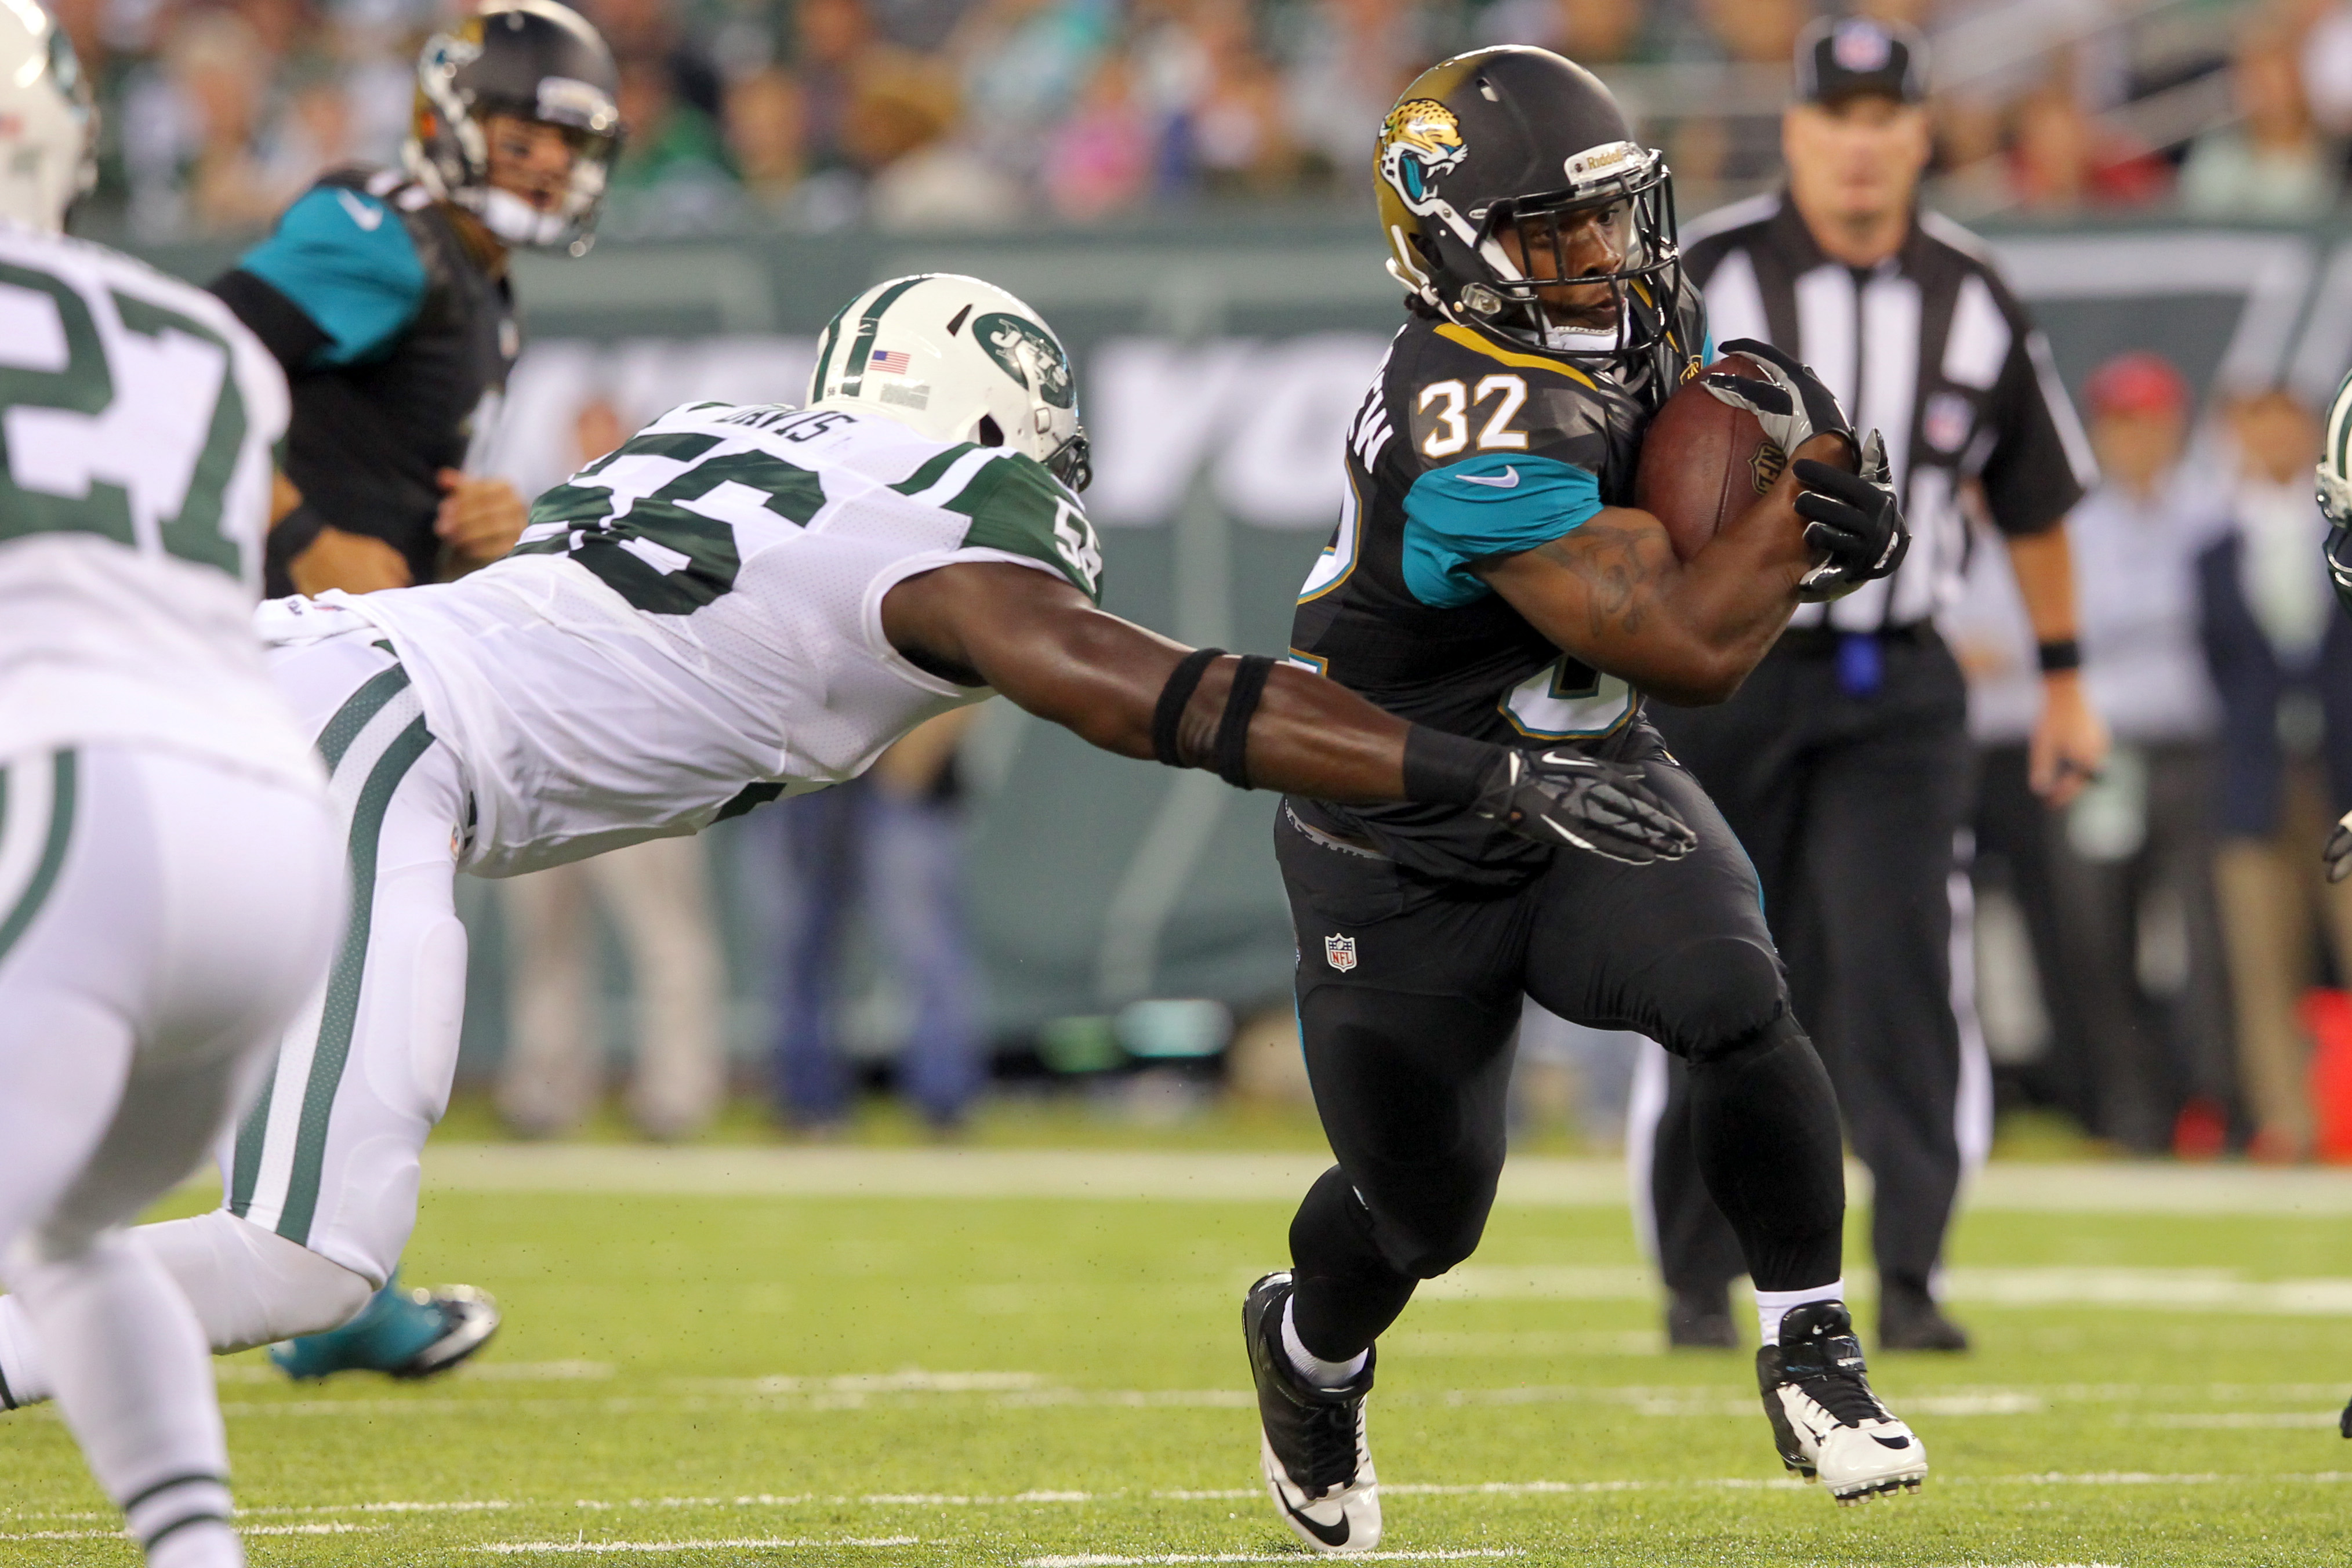 Maurice Jones-Drew runs by Jets linebacker DeMario Davis in a preseason game. (USAT Sports)